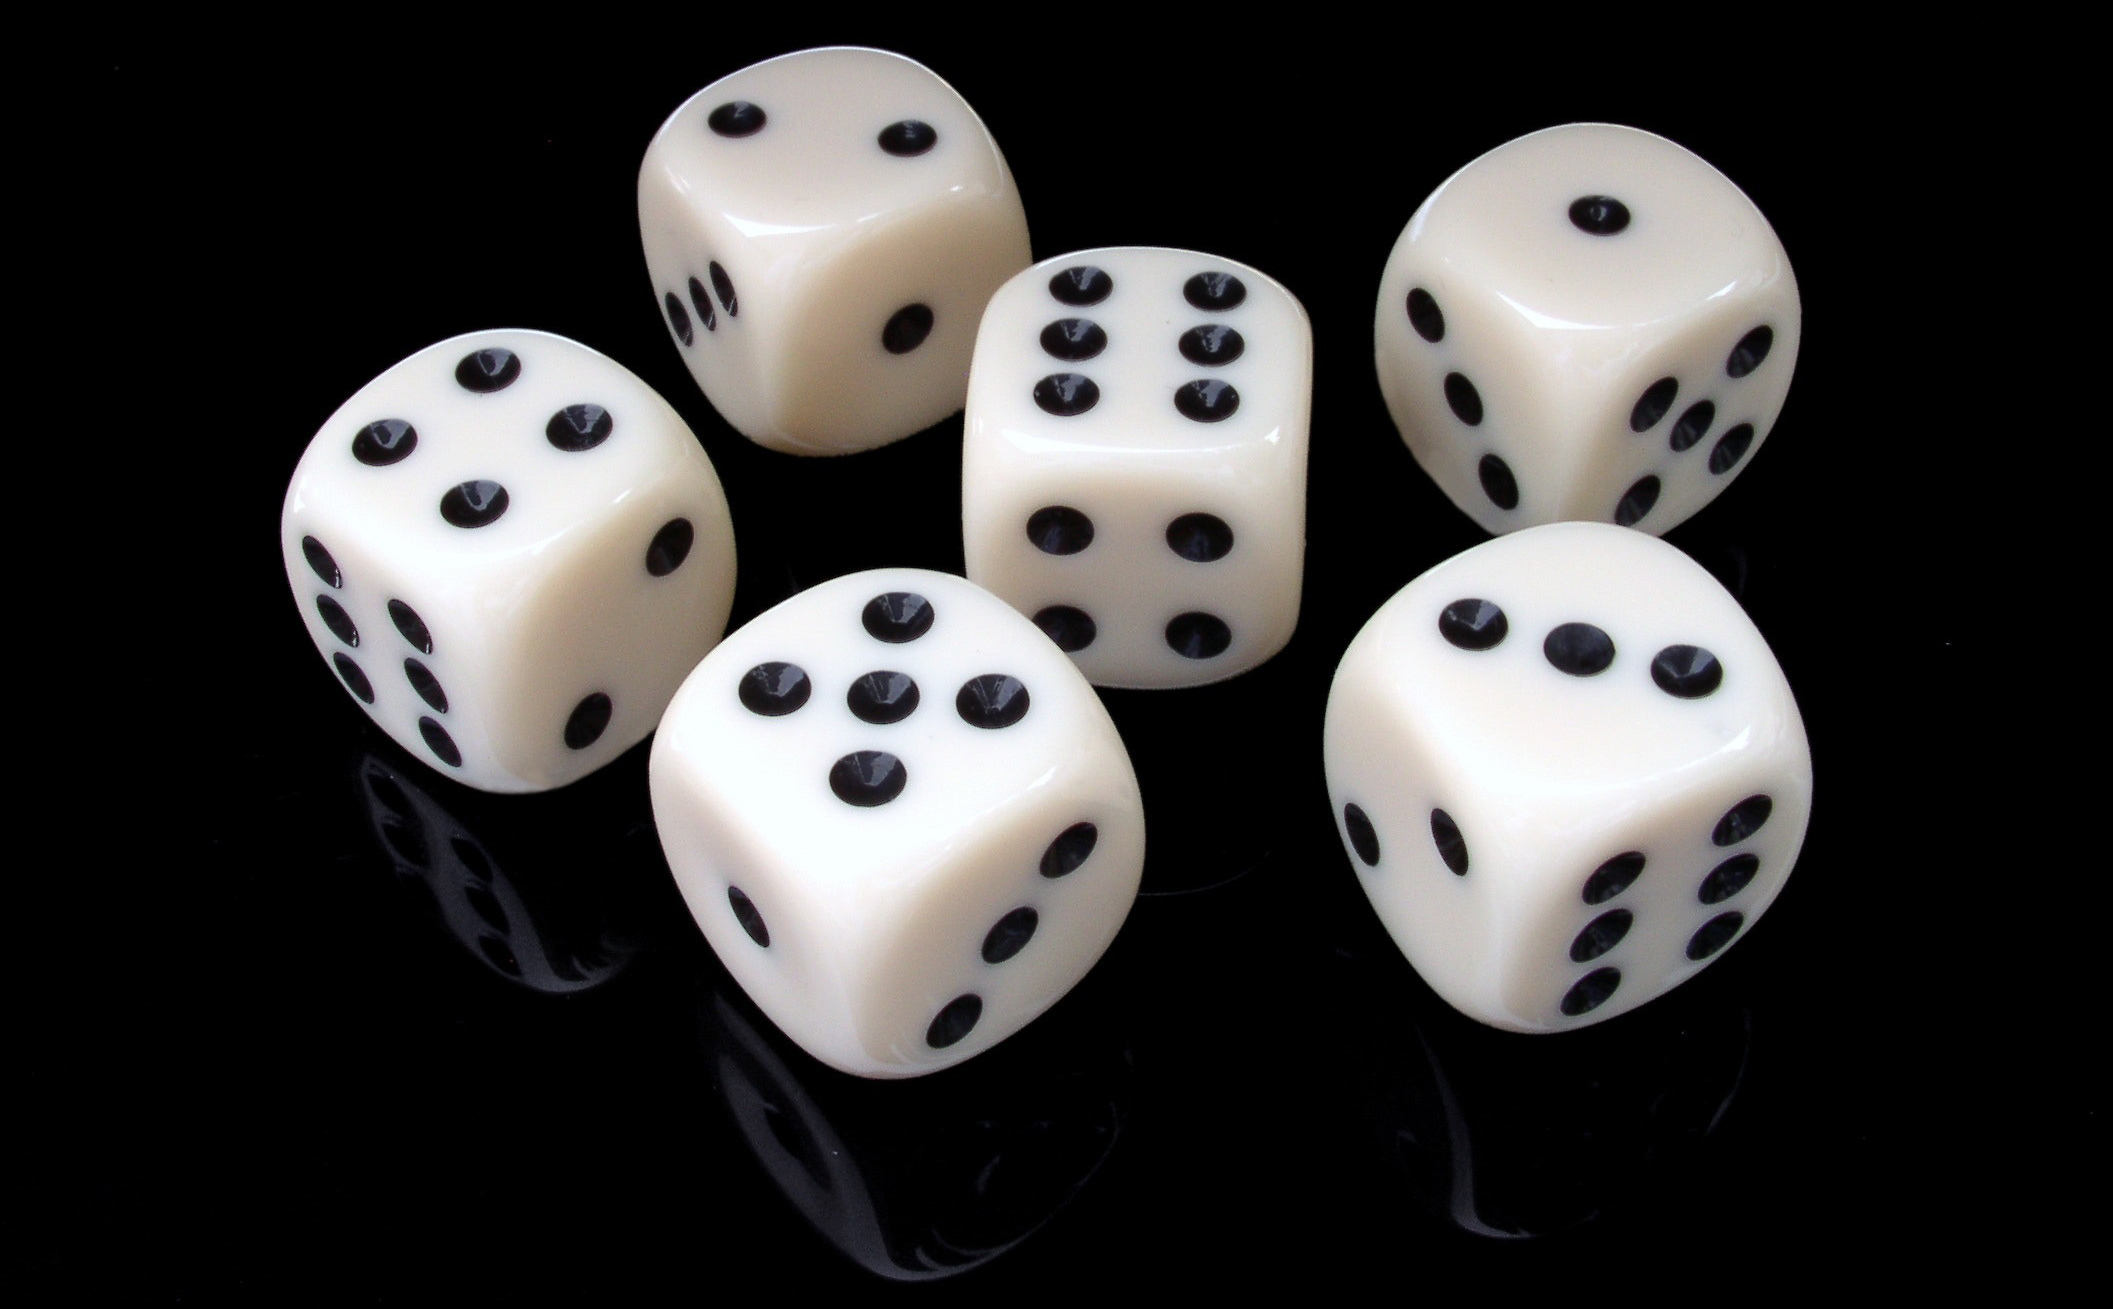 Dice games are your way to fun on betFIRST Casino